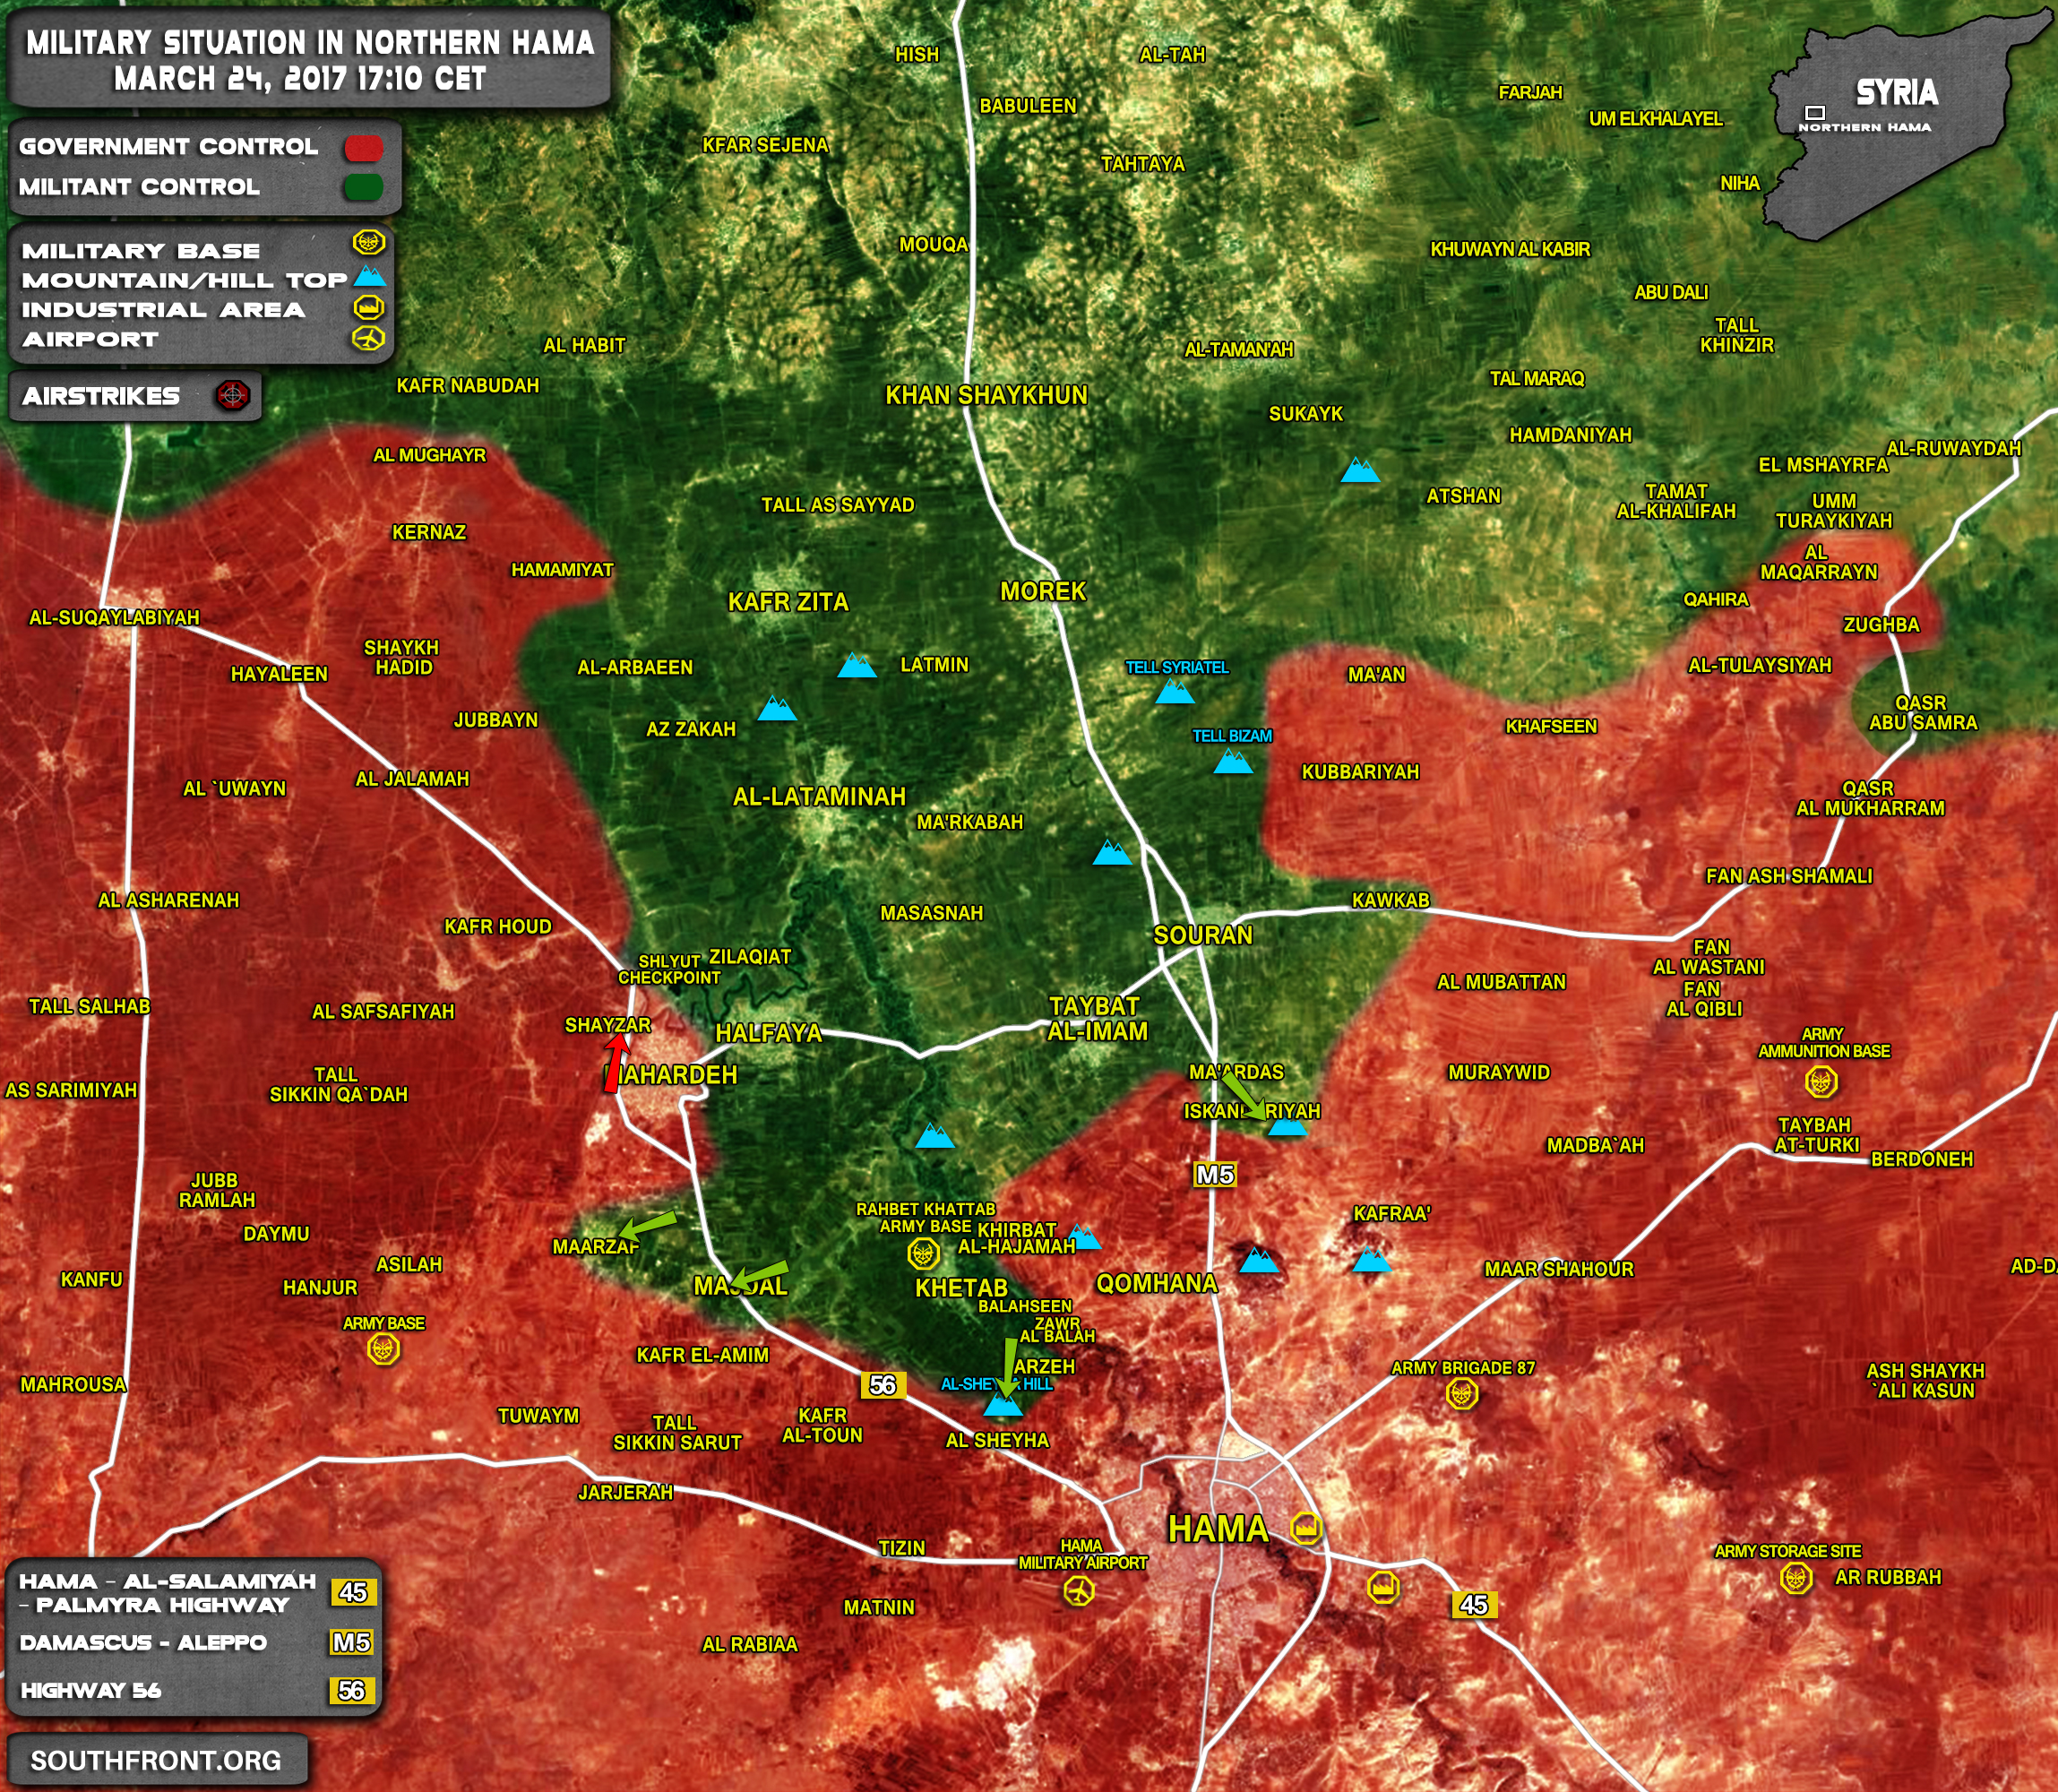 Military Situation In Northern Hama On March 24, 2017 (Map Update)